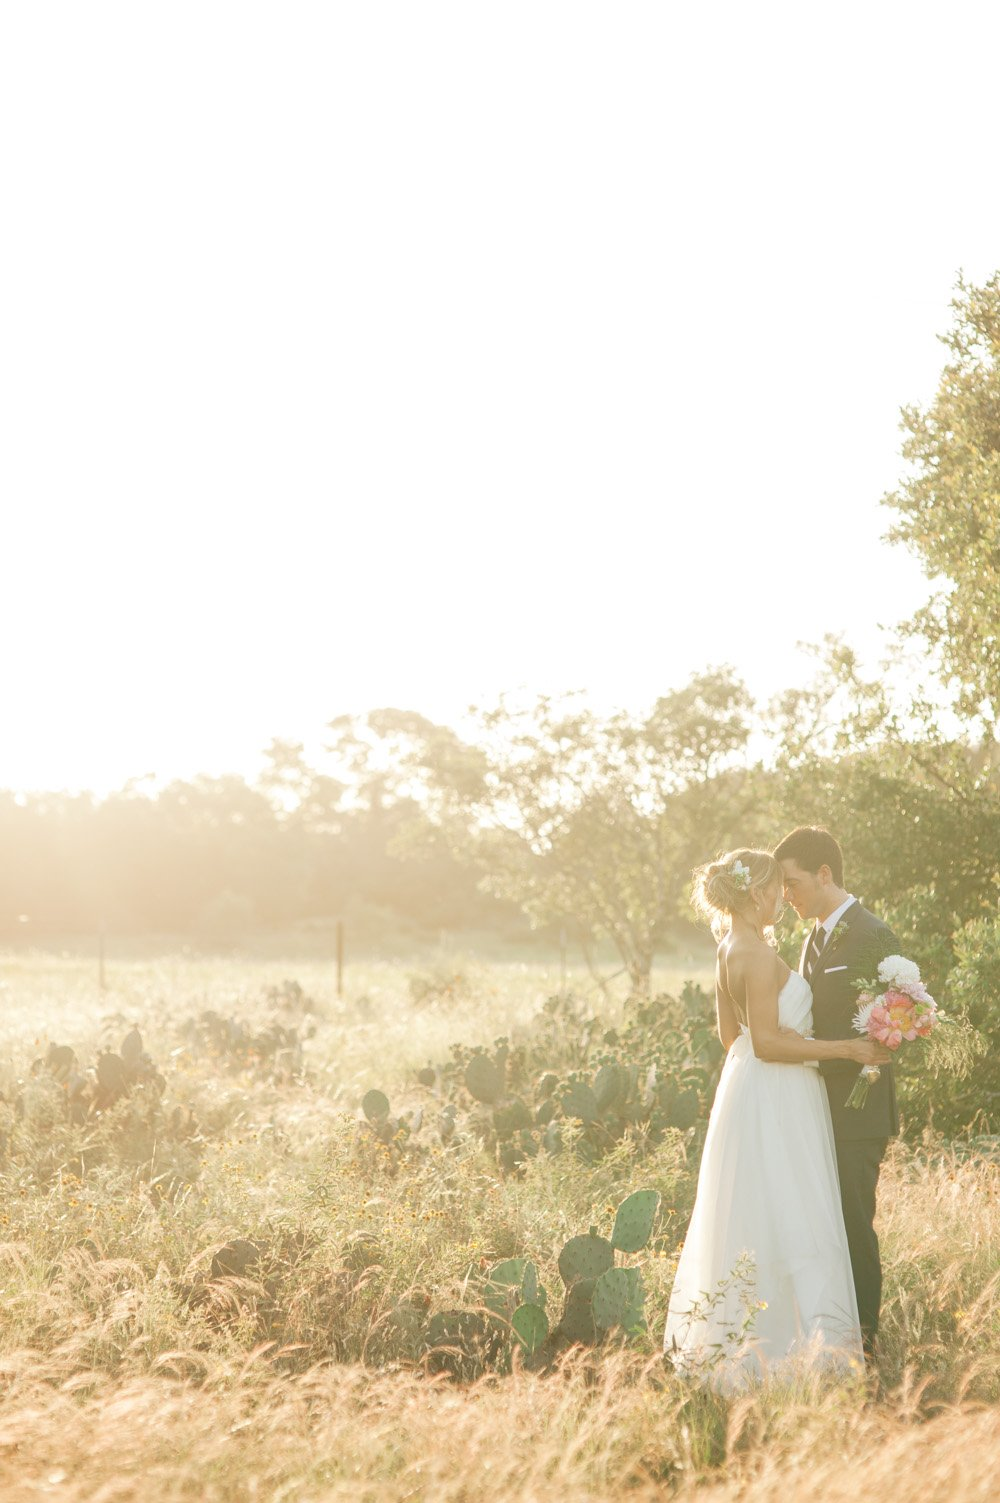 sunset portraits in a field, romantic wedding photography, modern wedding photographer in austin texas